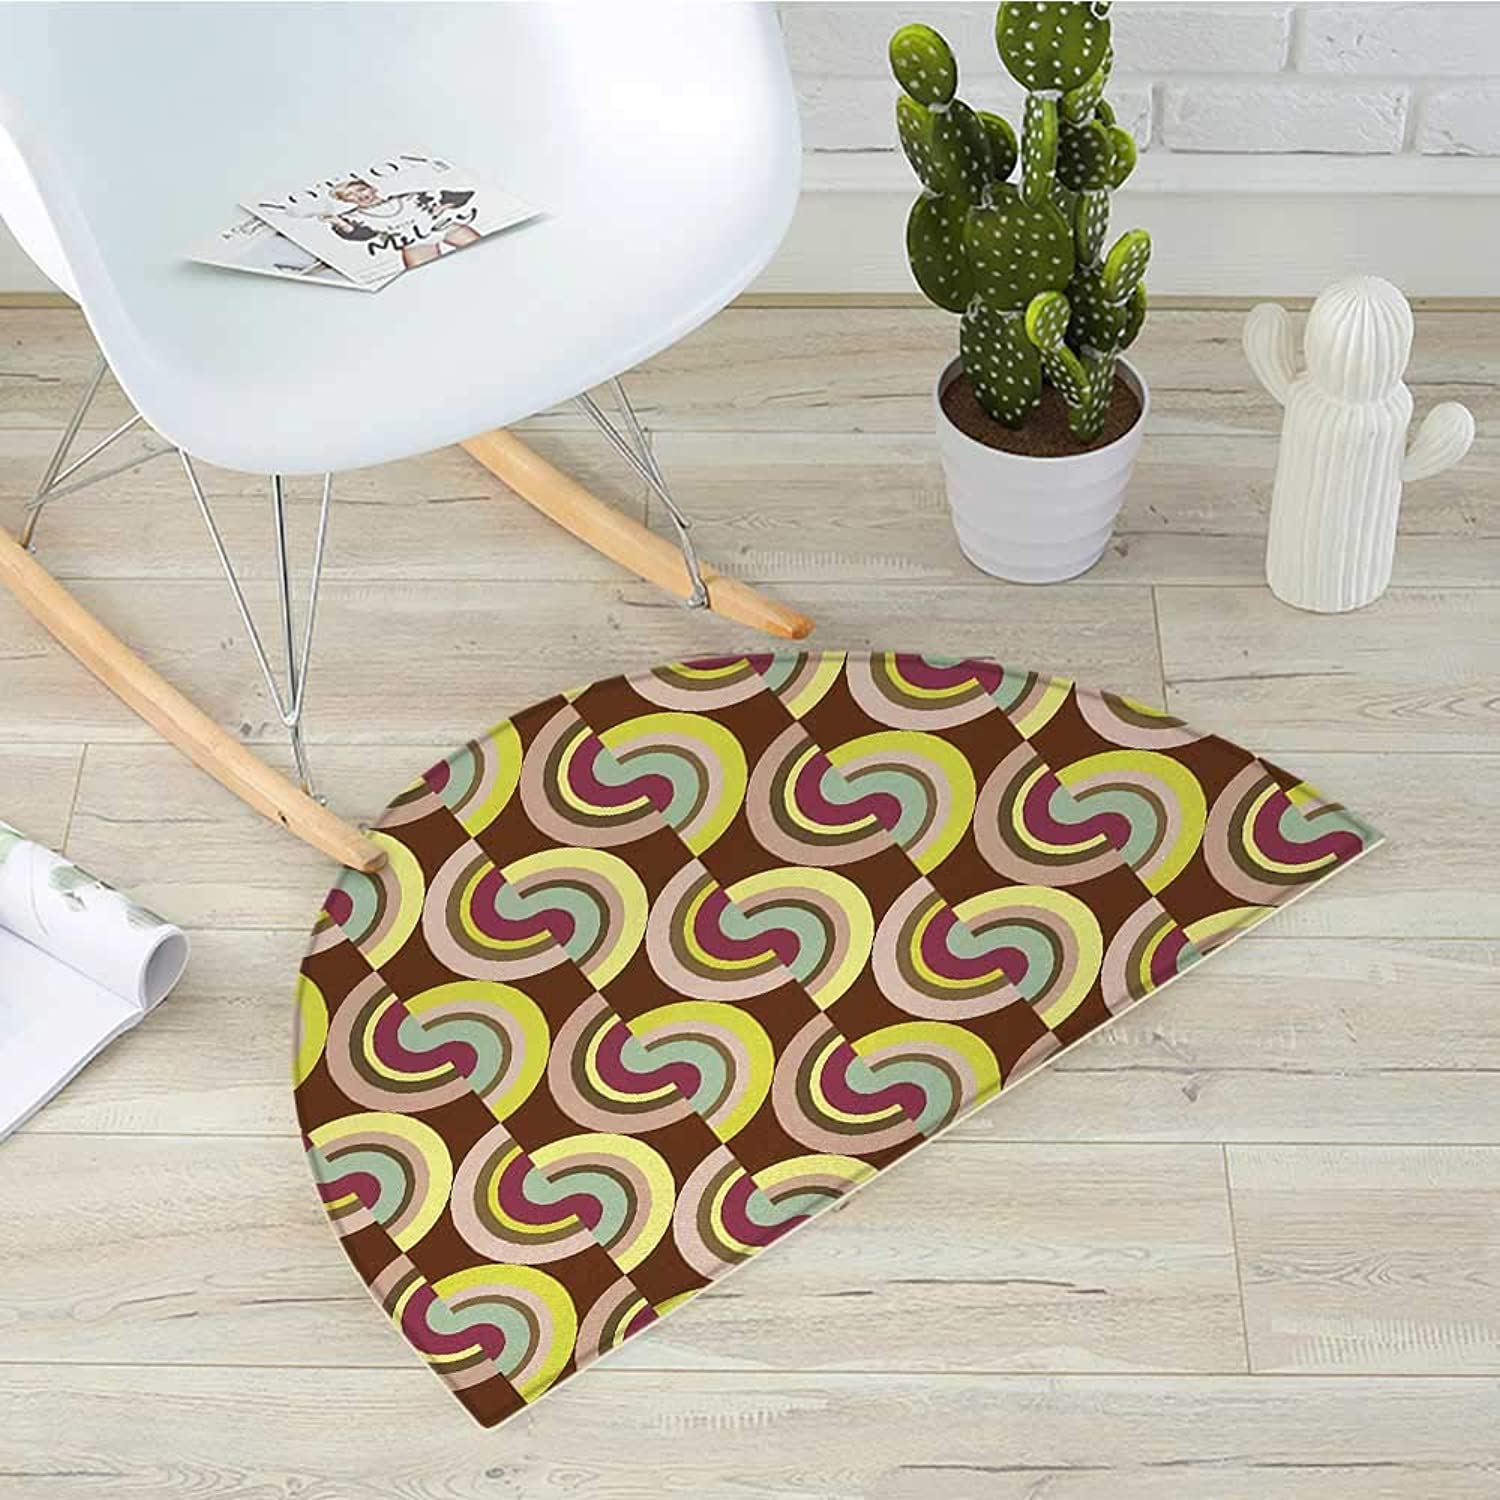 Retro Semicircle Doormat Vintage Hippie Modern Design with Geometric colorful Rounds Circles Image Halfmoon doormats H 39.3  xD 59  purplec Purple and Cocoa